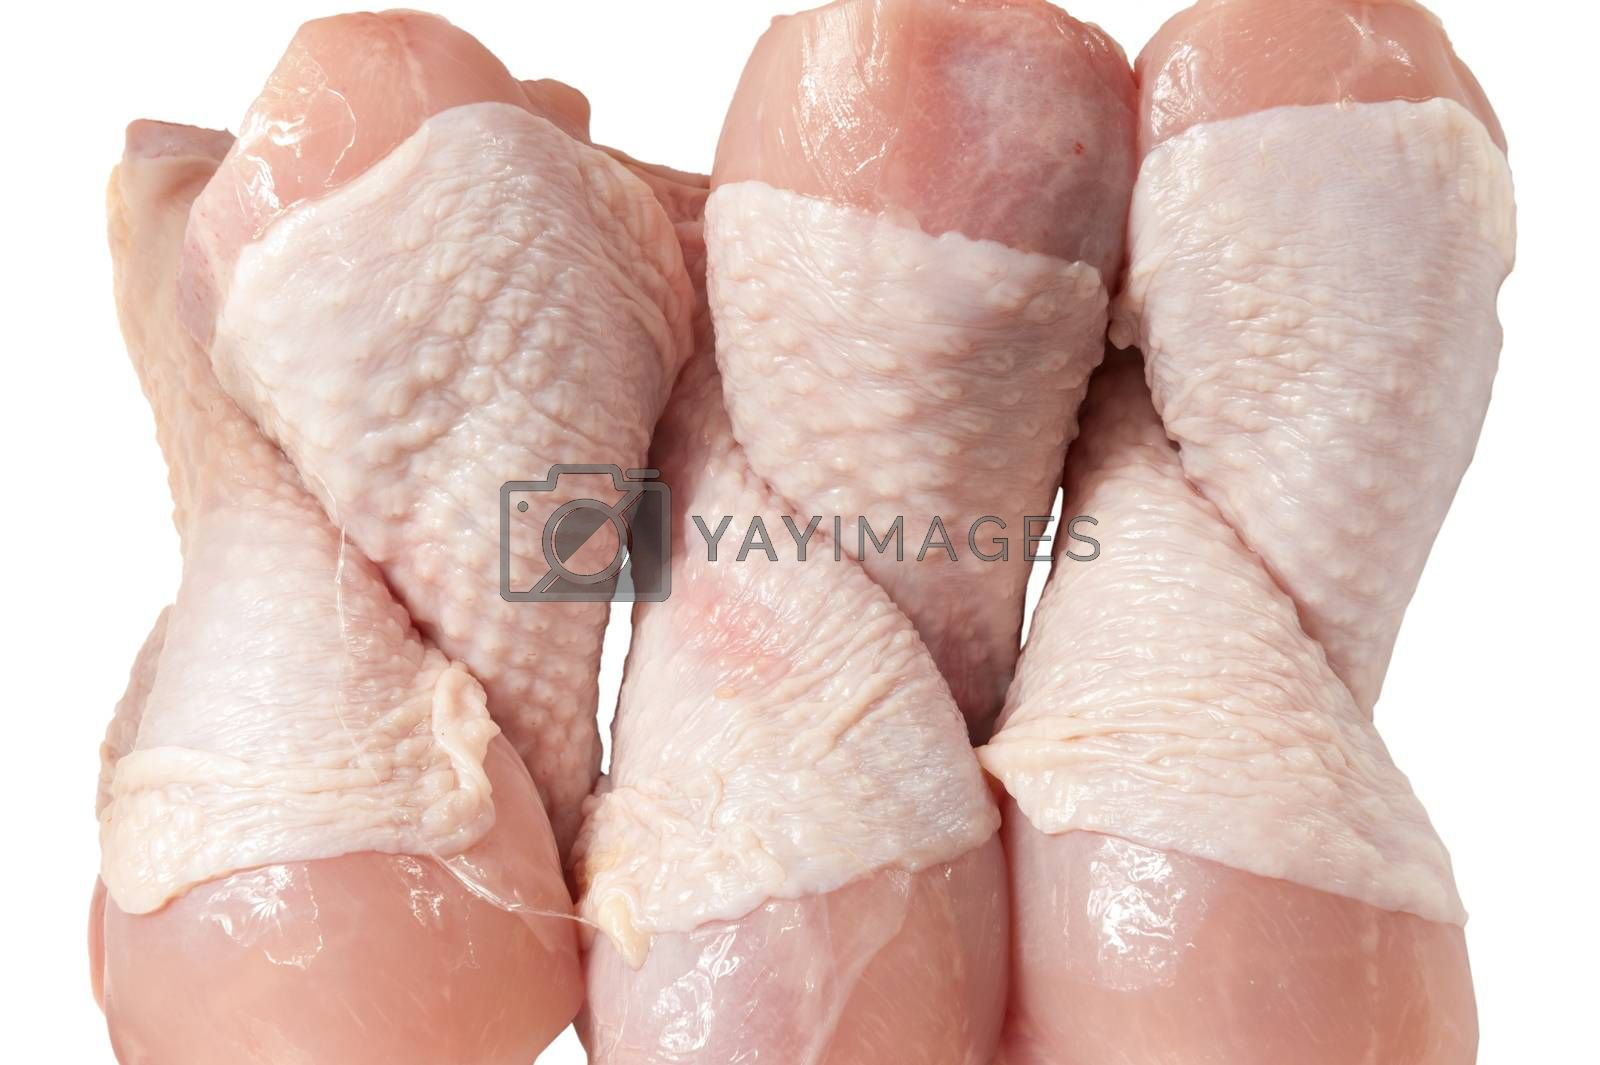 raw chicken legs isolated on white background